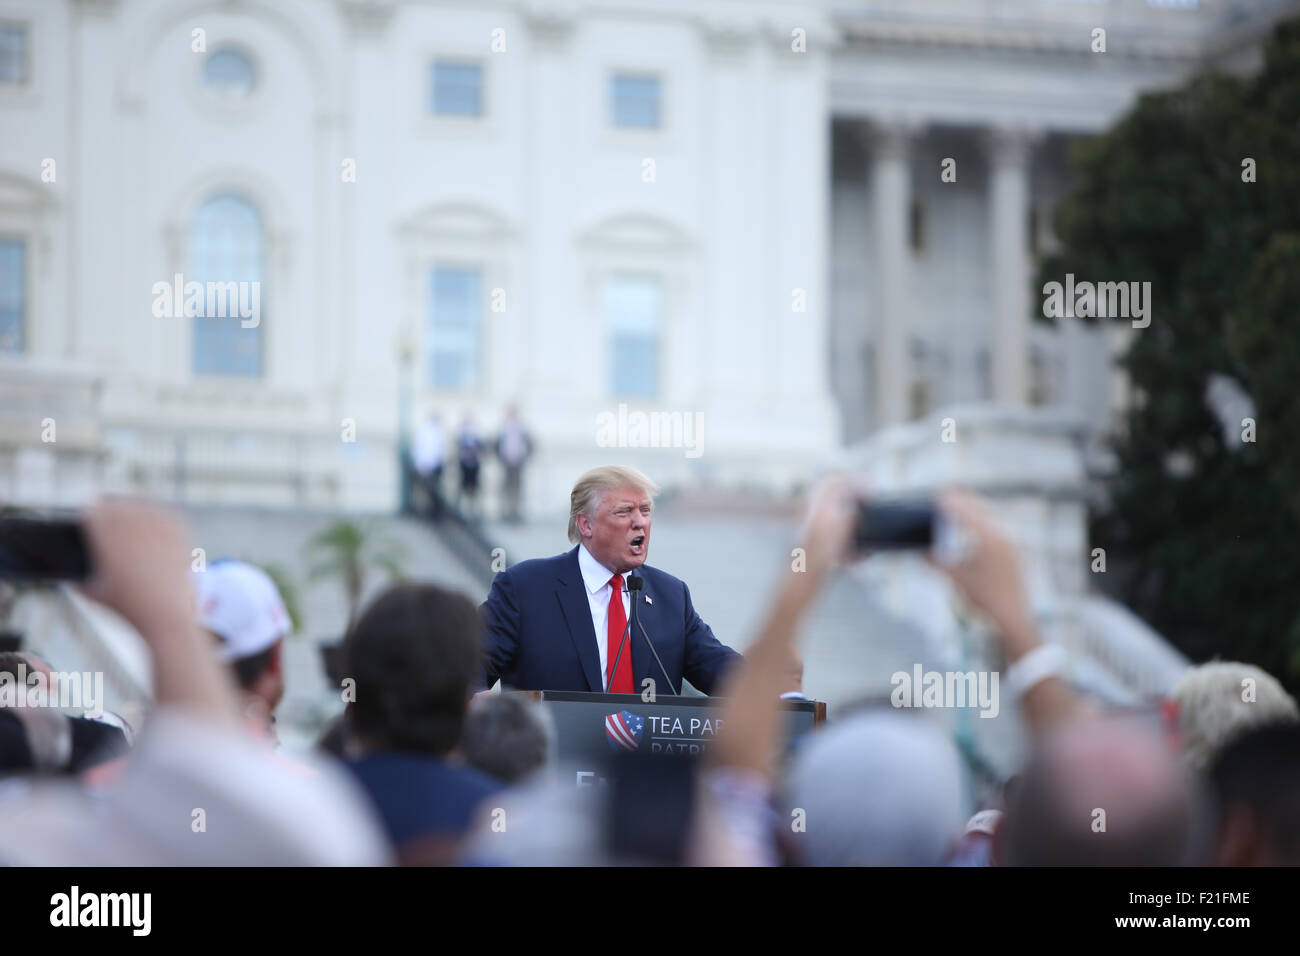 Washington DC, USA. 9th September, 2015. Donald Trump speaks at the Rally Against the Iran Nuclear Deal. Donald - Stock Image